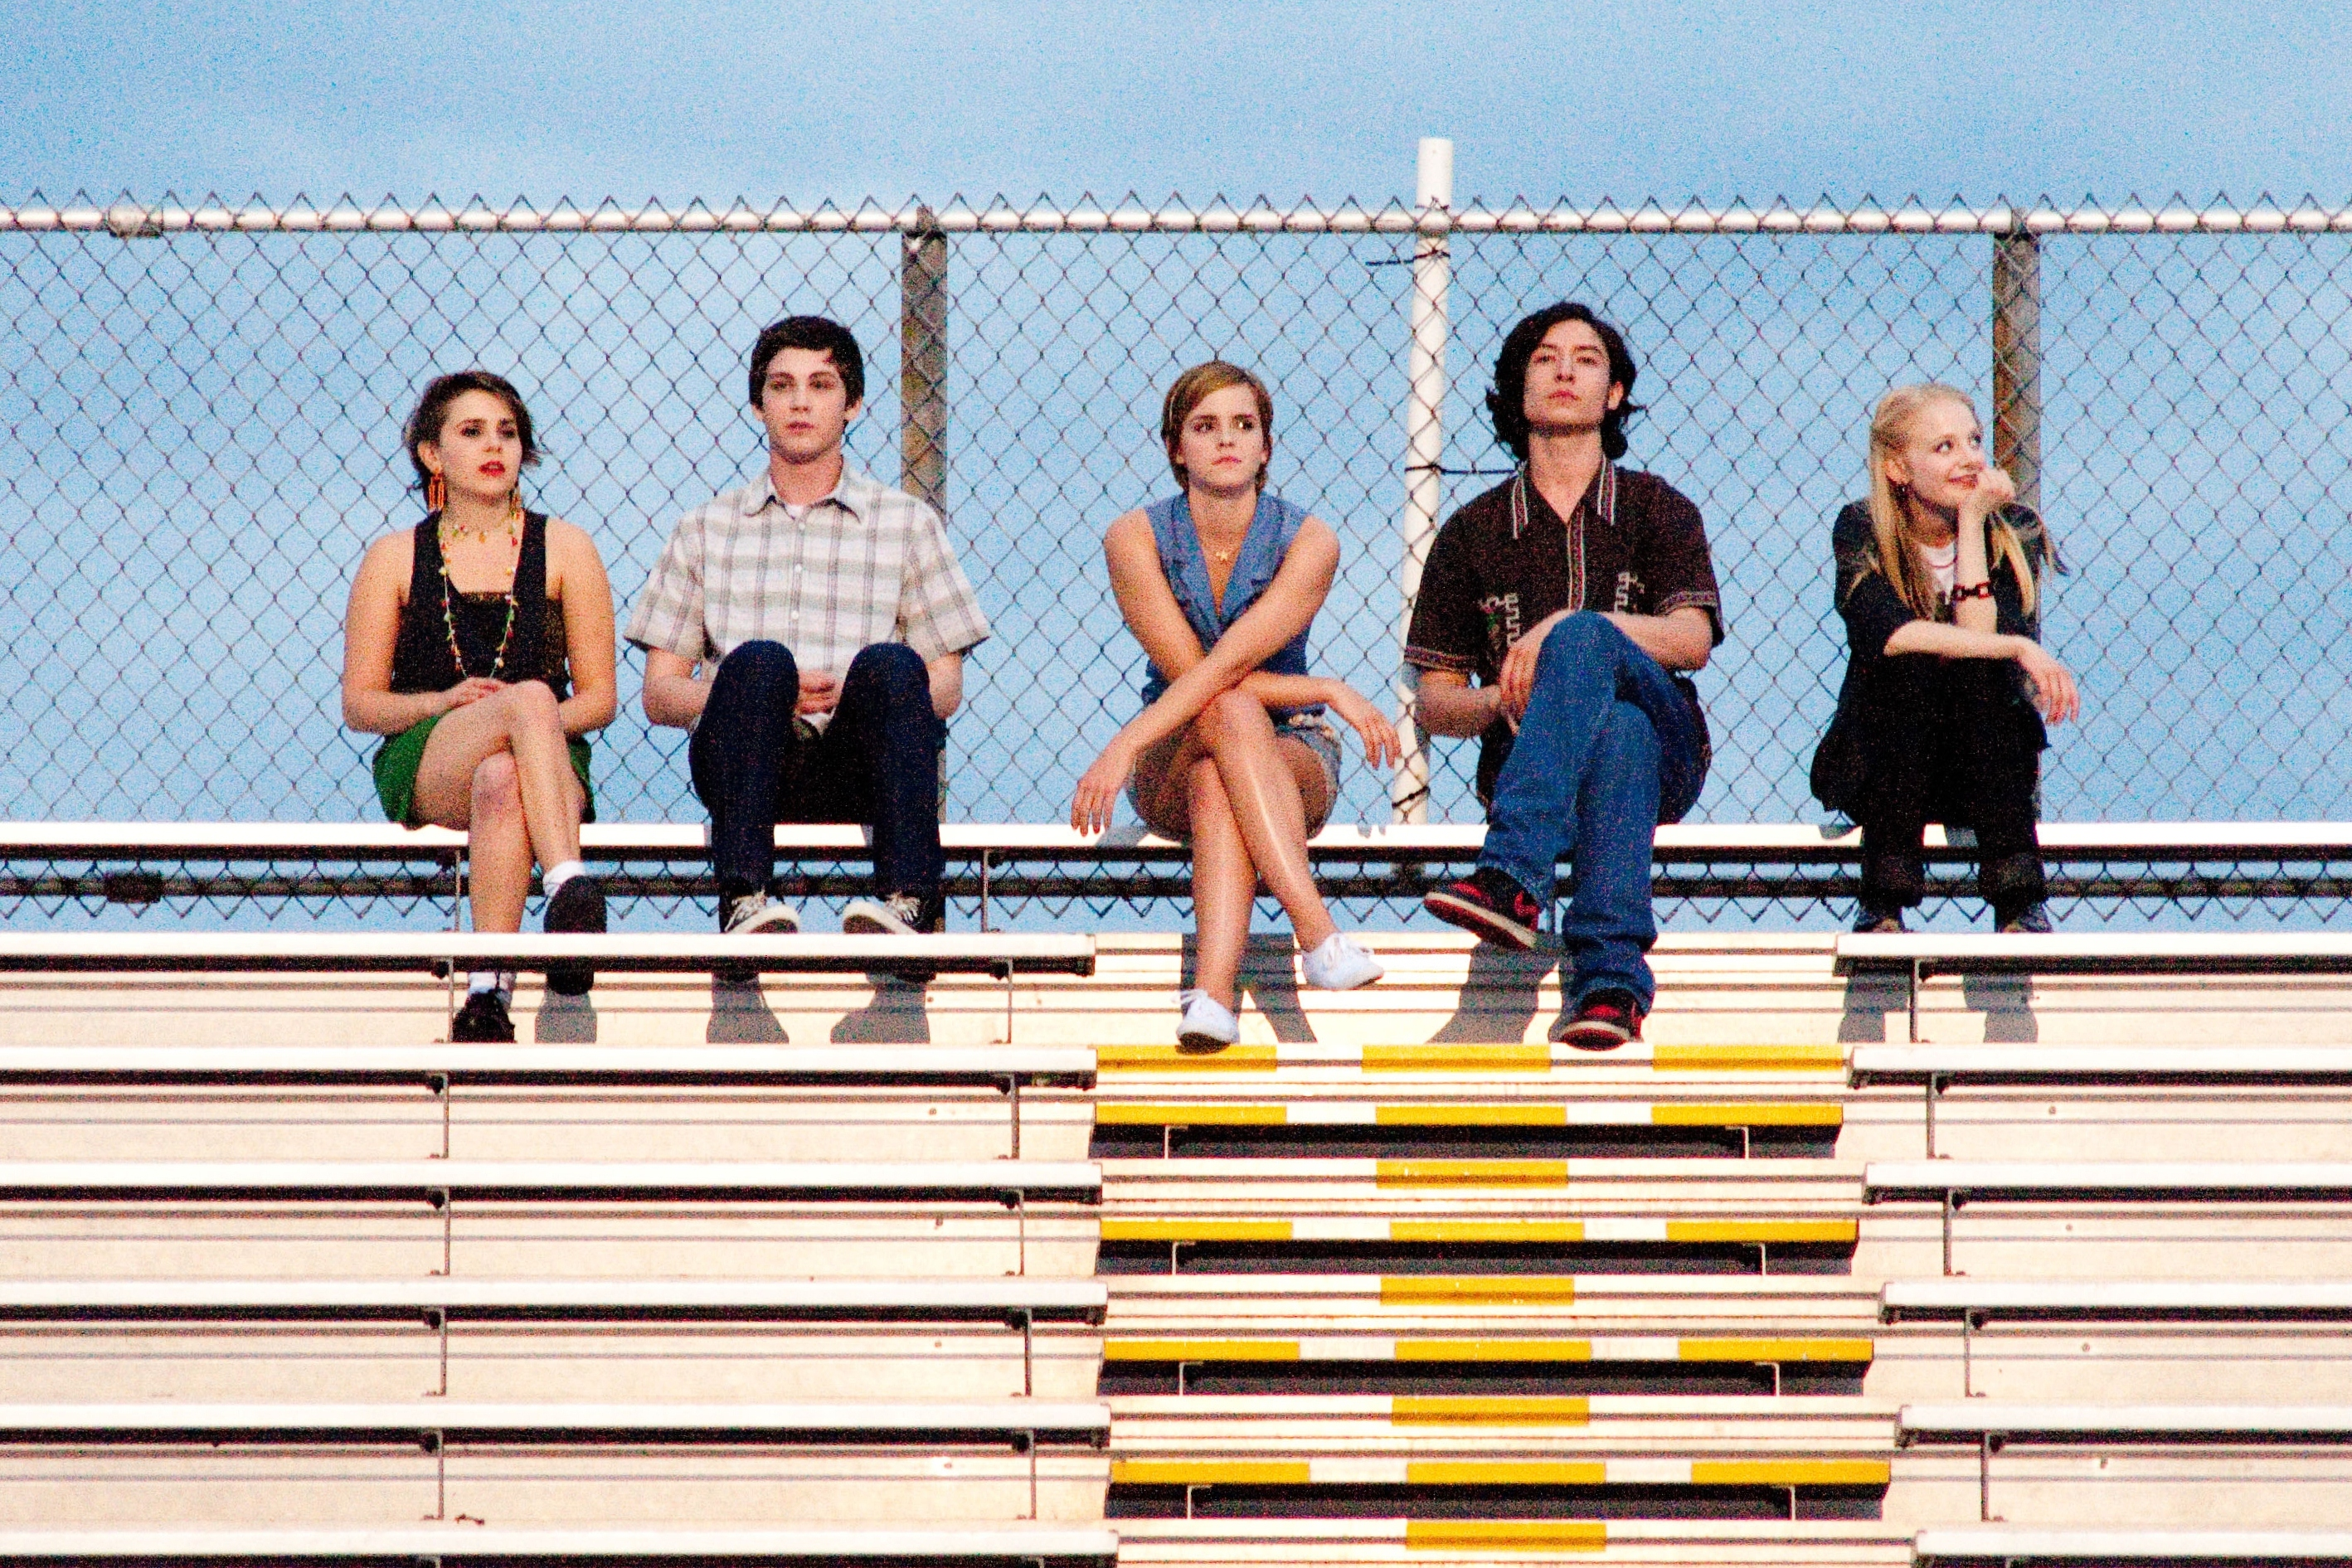 THE PERKS OF BEING A WALLFLOWER Ph: John Bramley © 2011 Summit Entertainment, LLC. All rights reserved.